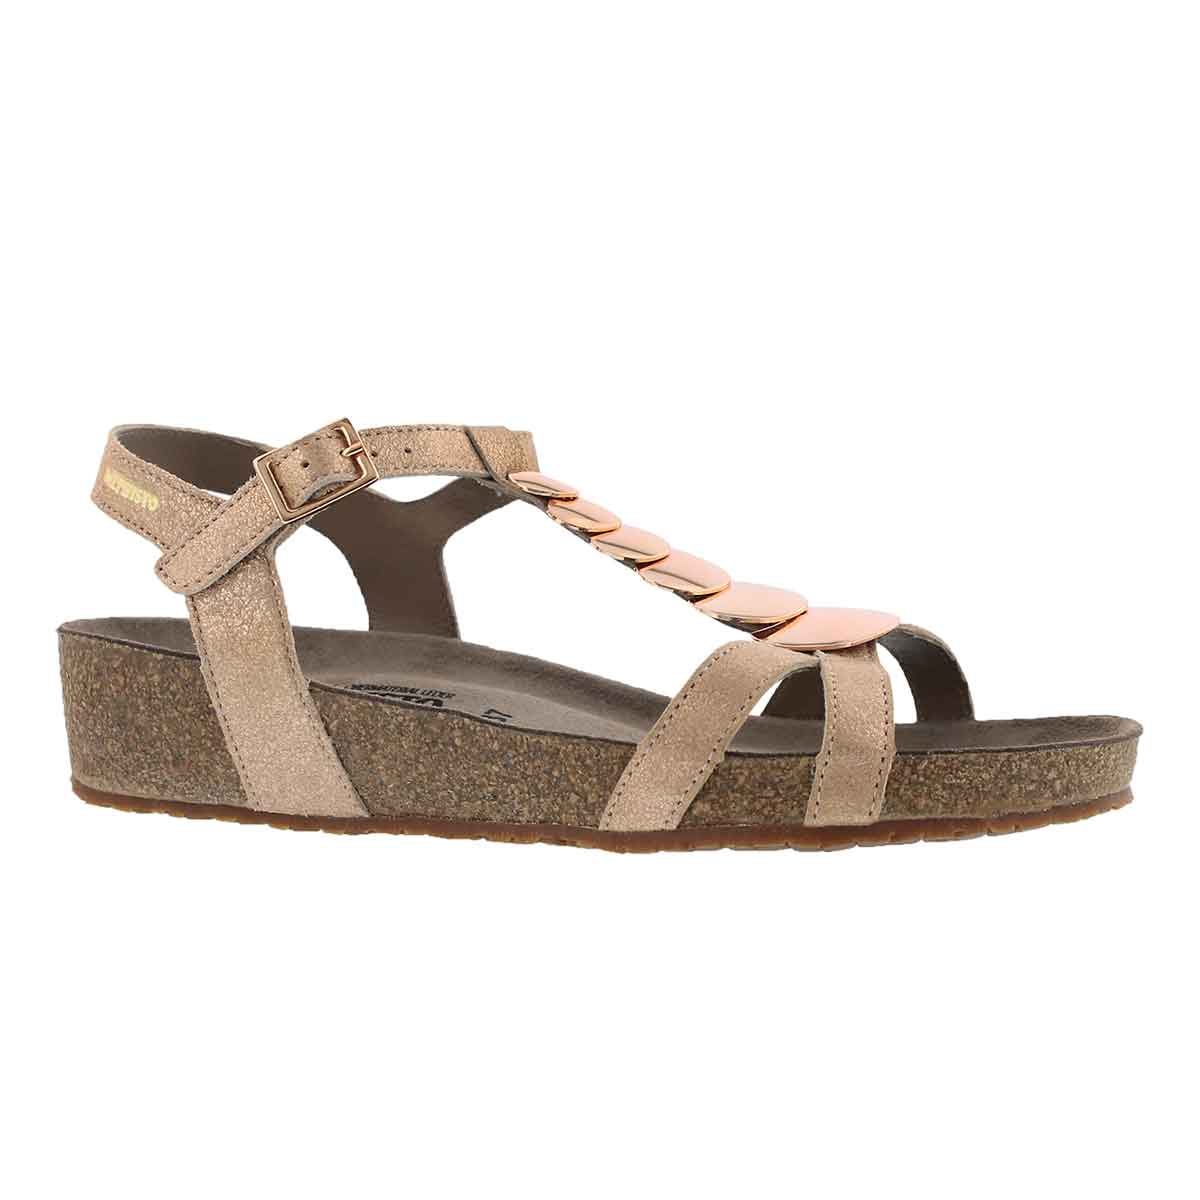 Women's IRMA taupe wedge cork footbed sandals